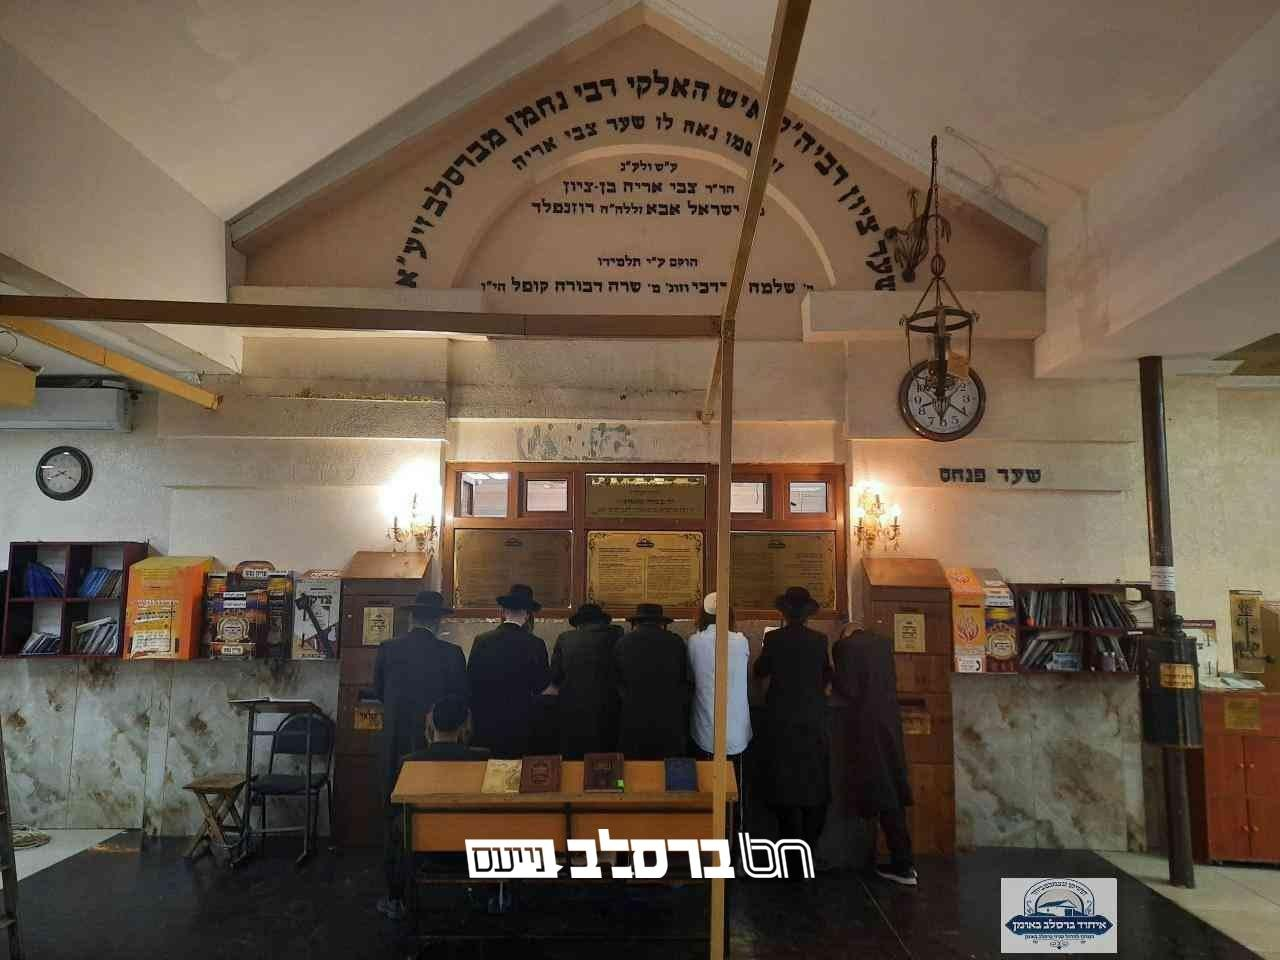 Breslov Union in Uman starting to prepare the Tziyon of Rabbeinu for Rosh Hashanah 5771